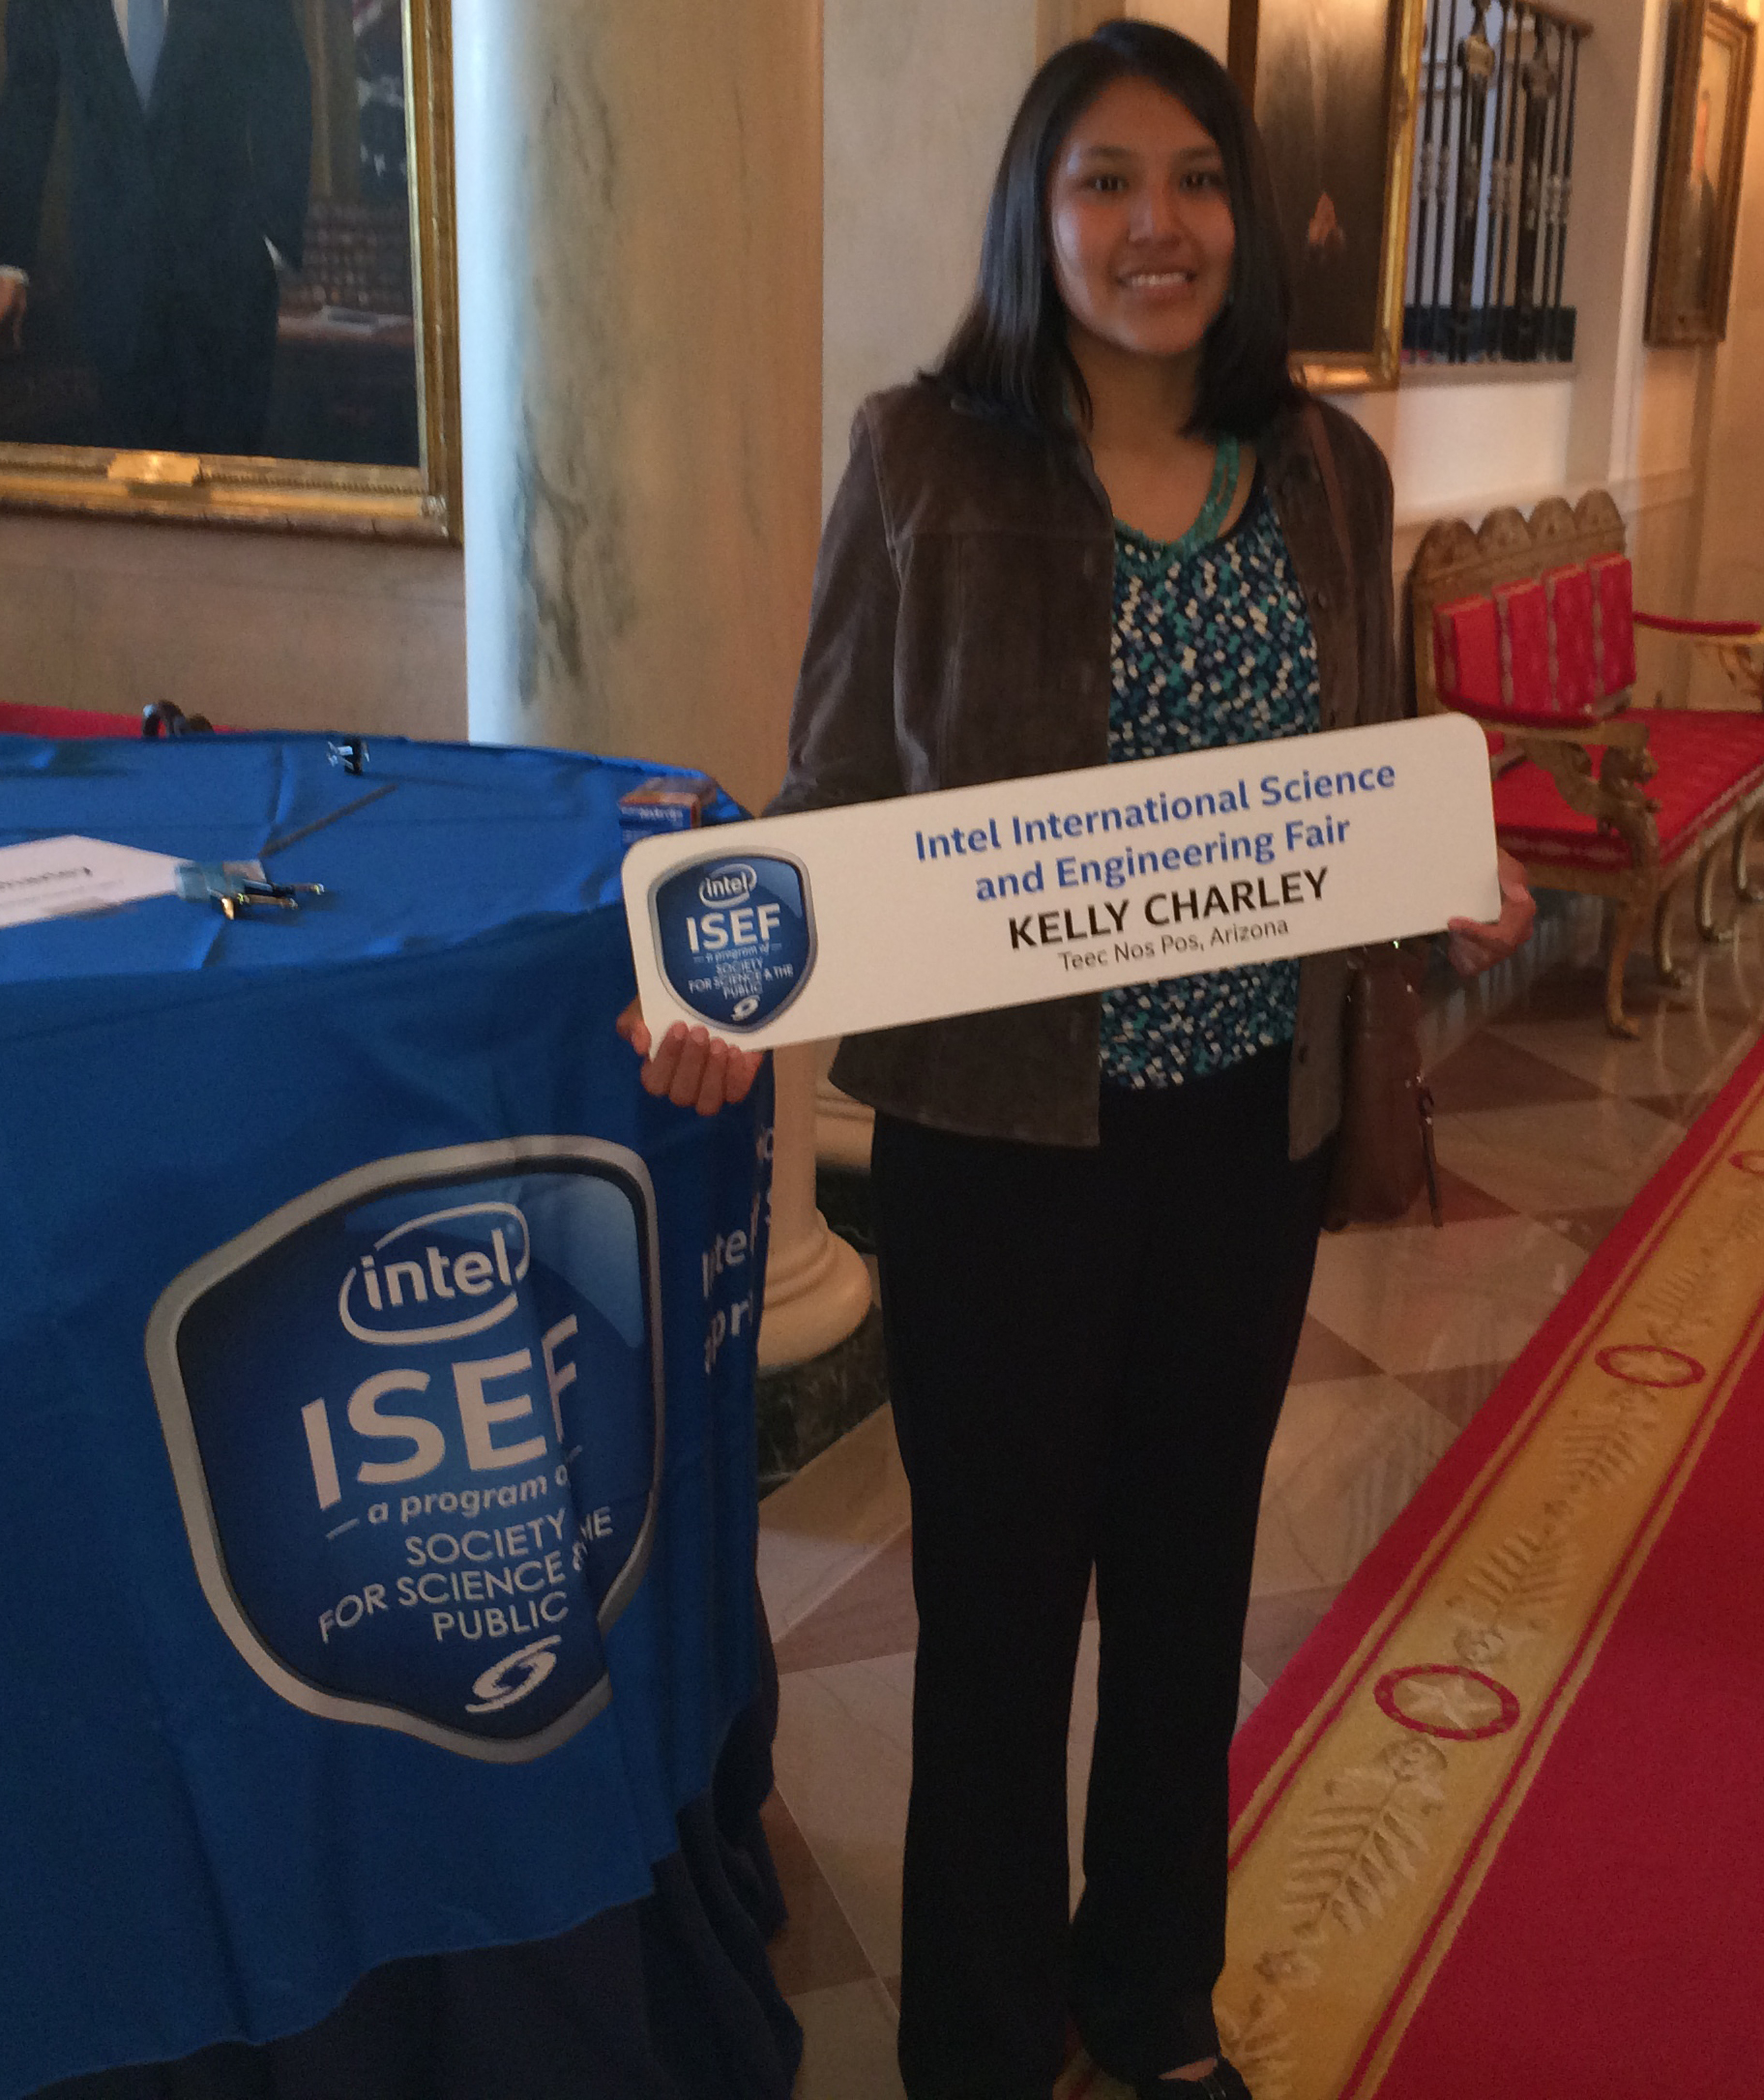 Kelly Charley, Intel ISEF 2014 finalist, represented the competition at the White House Science Fair.